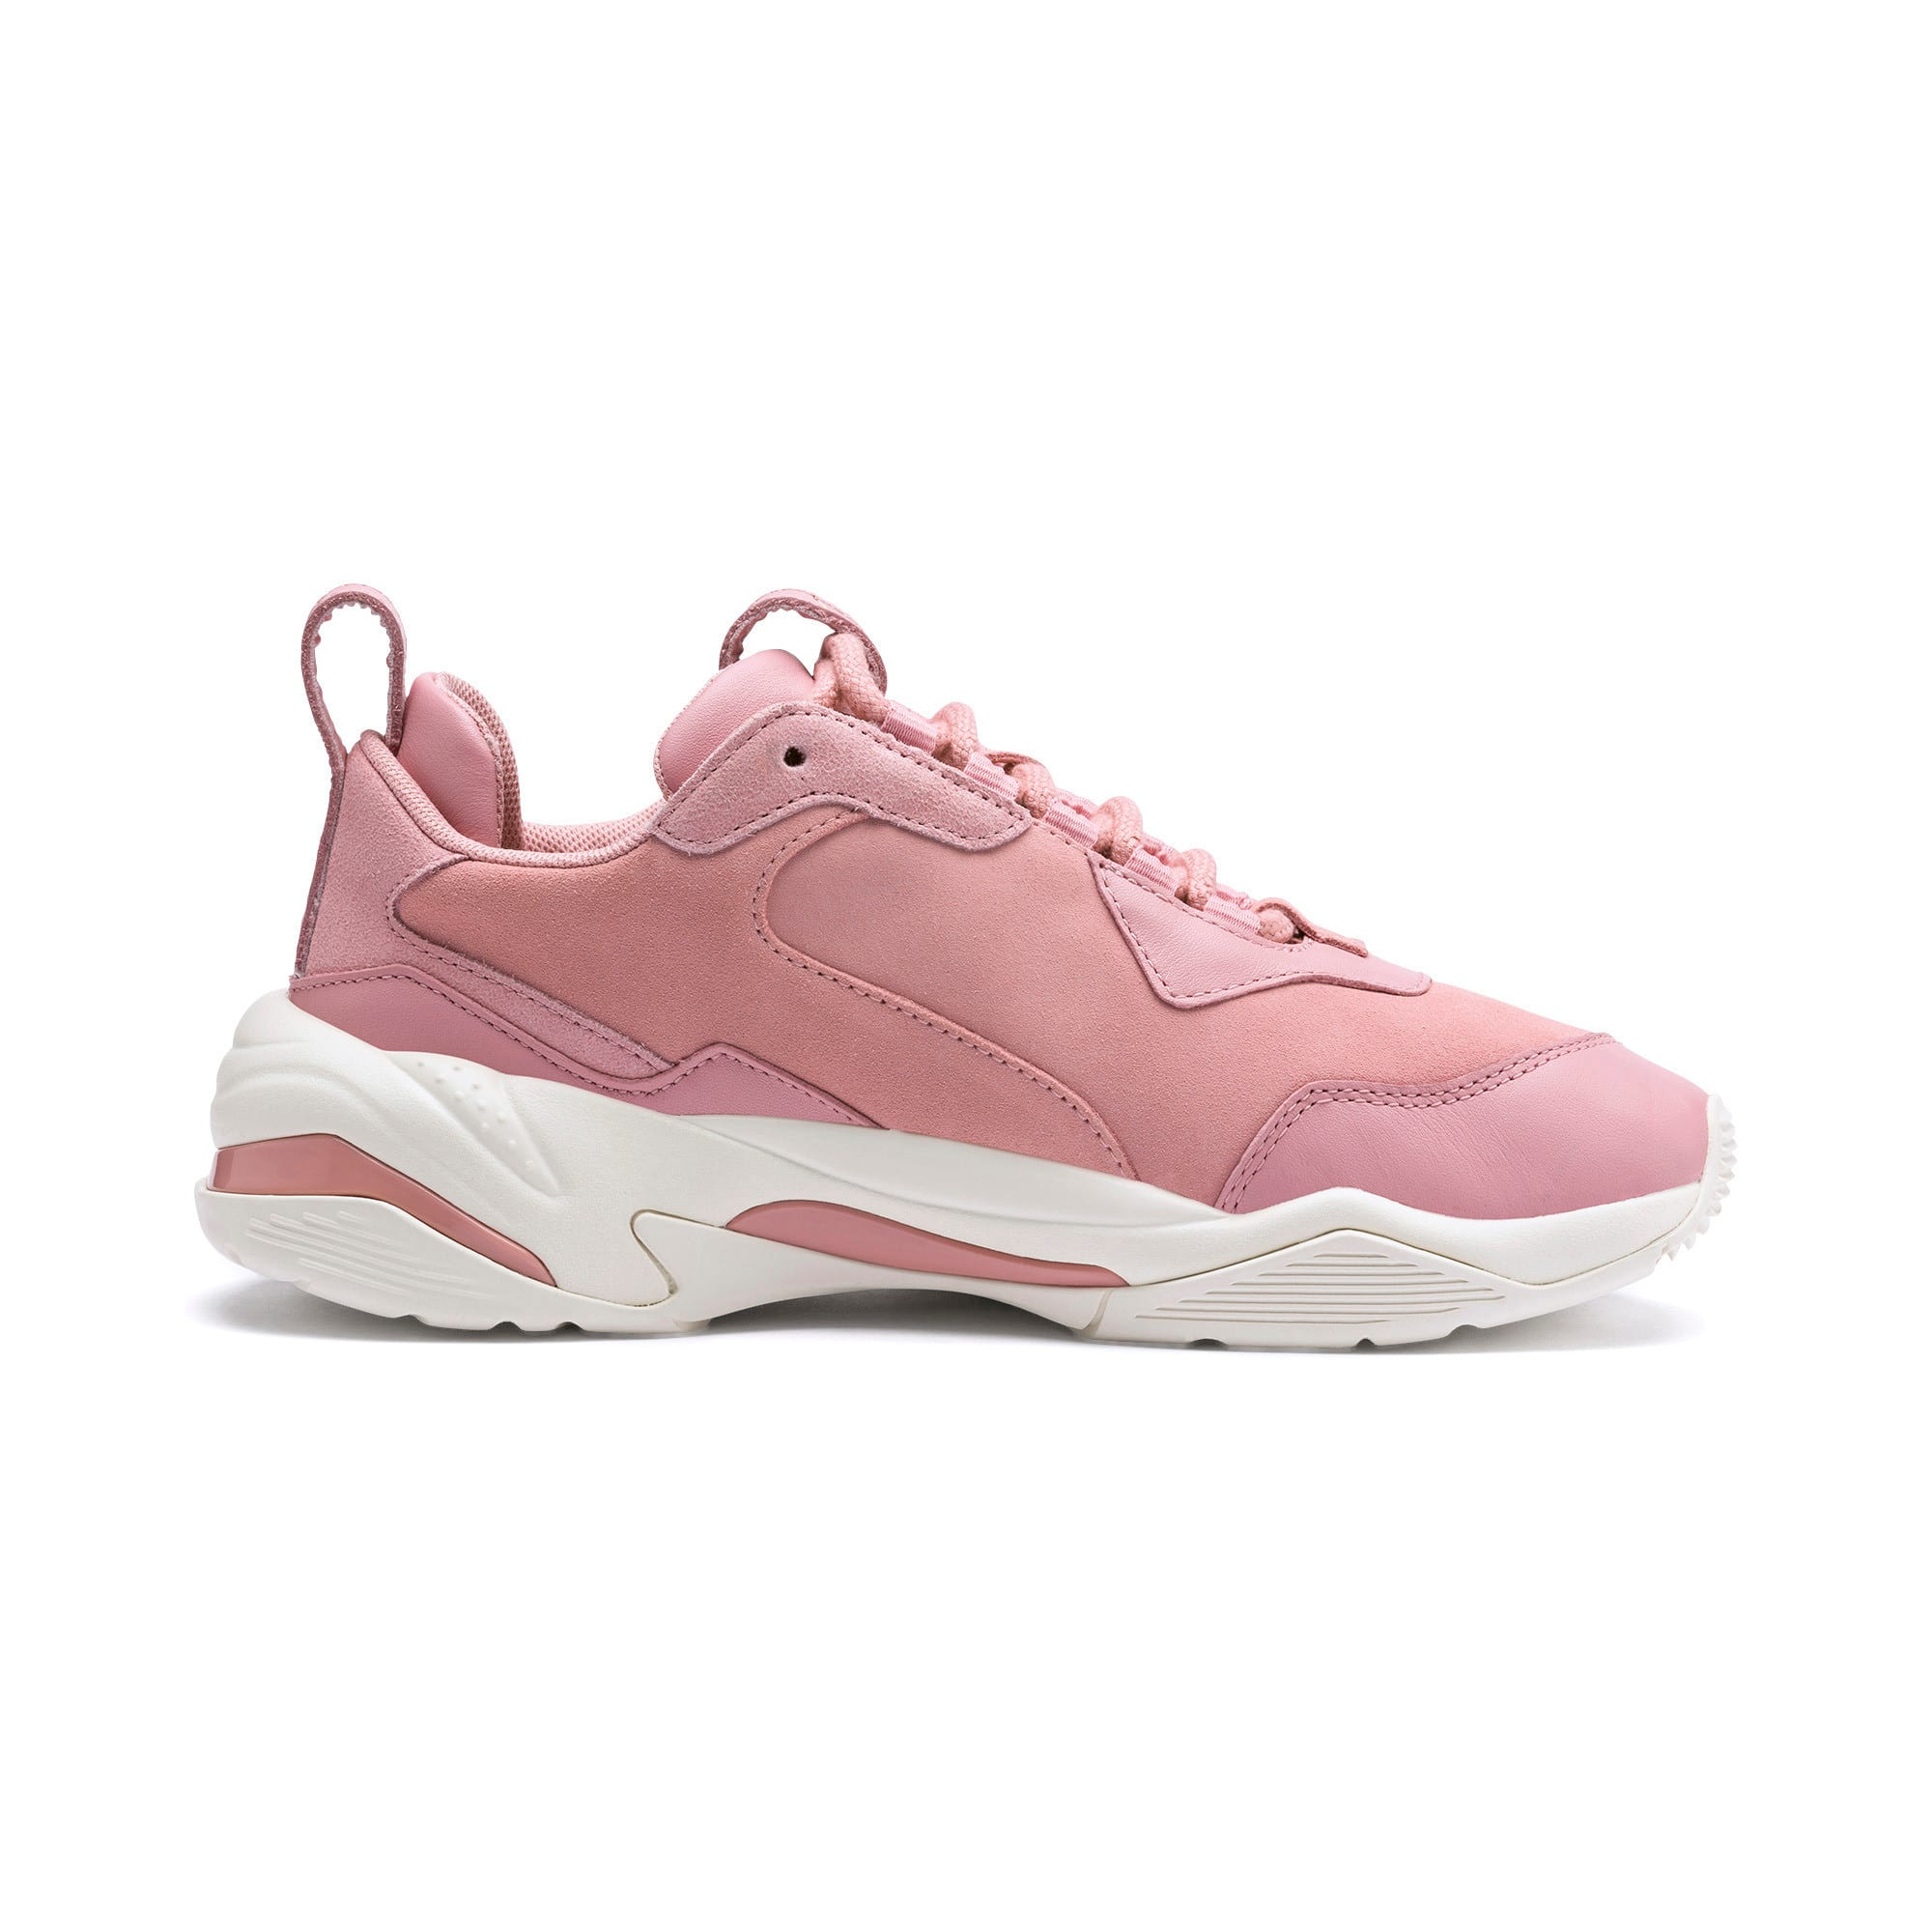 Thumbnail 6 of Thunder Fire Rose Women's Trainers, Bridal Rose-Puma Team Gold, medium